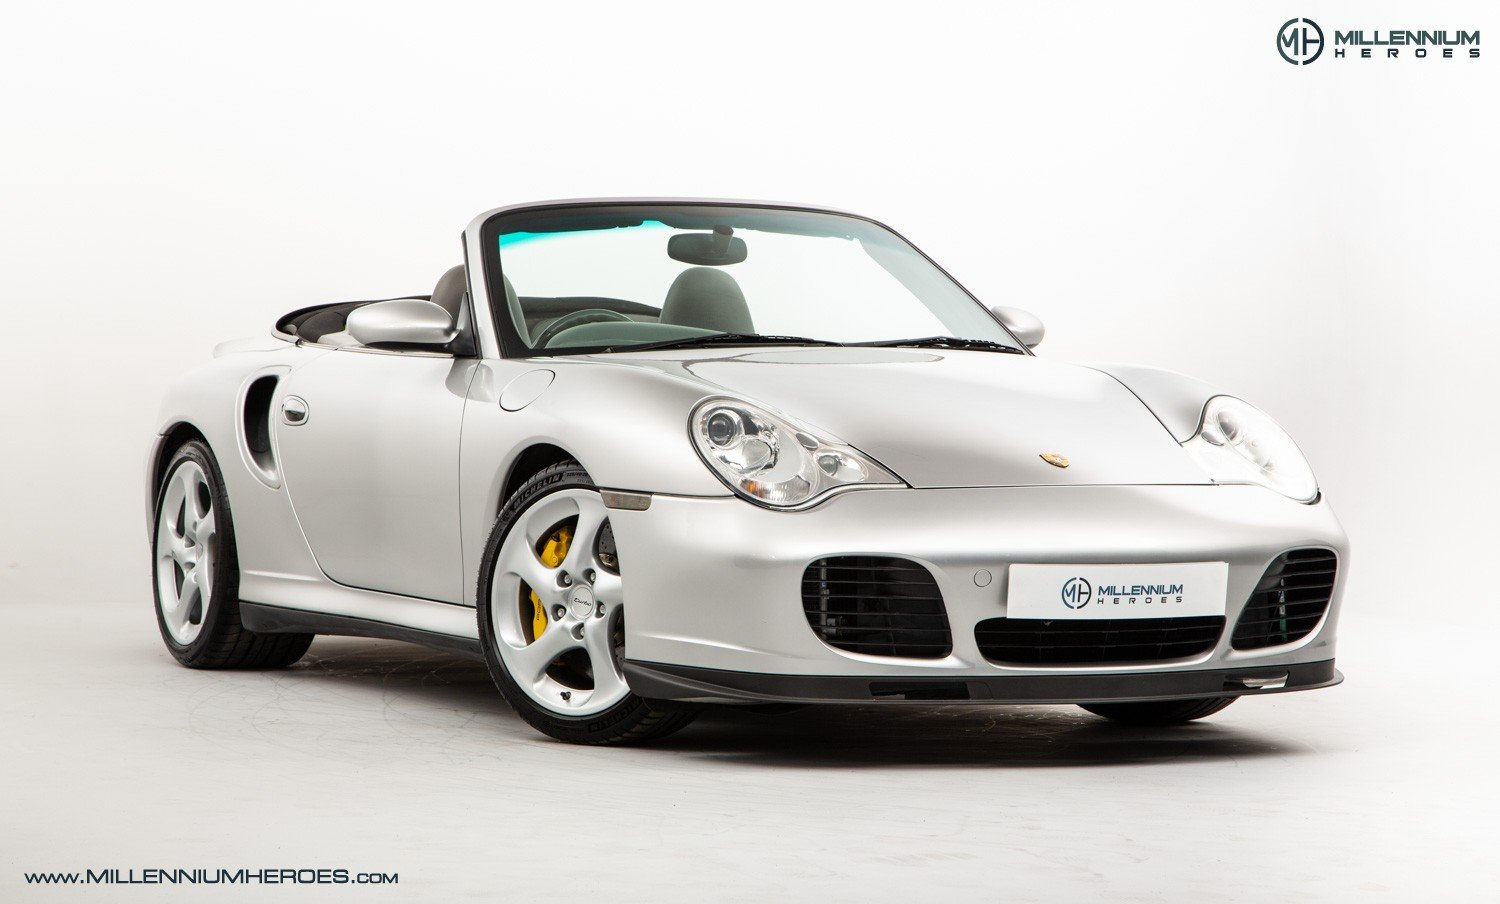 2004 PORSCHE 996 TURBO // X50 PACK // MANUAL // 19K MILES For Sale (picture 2 of 6)